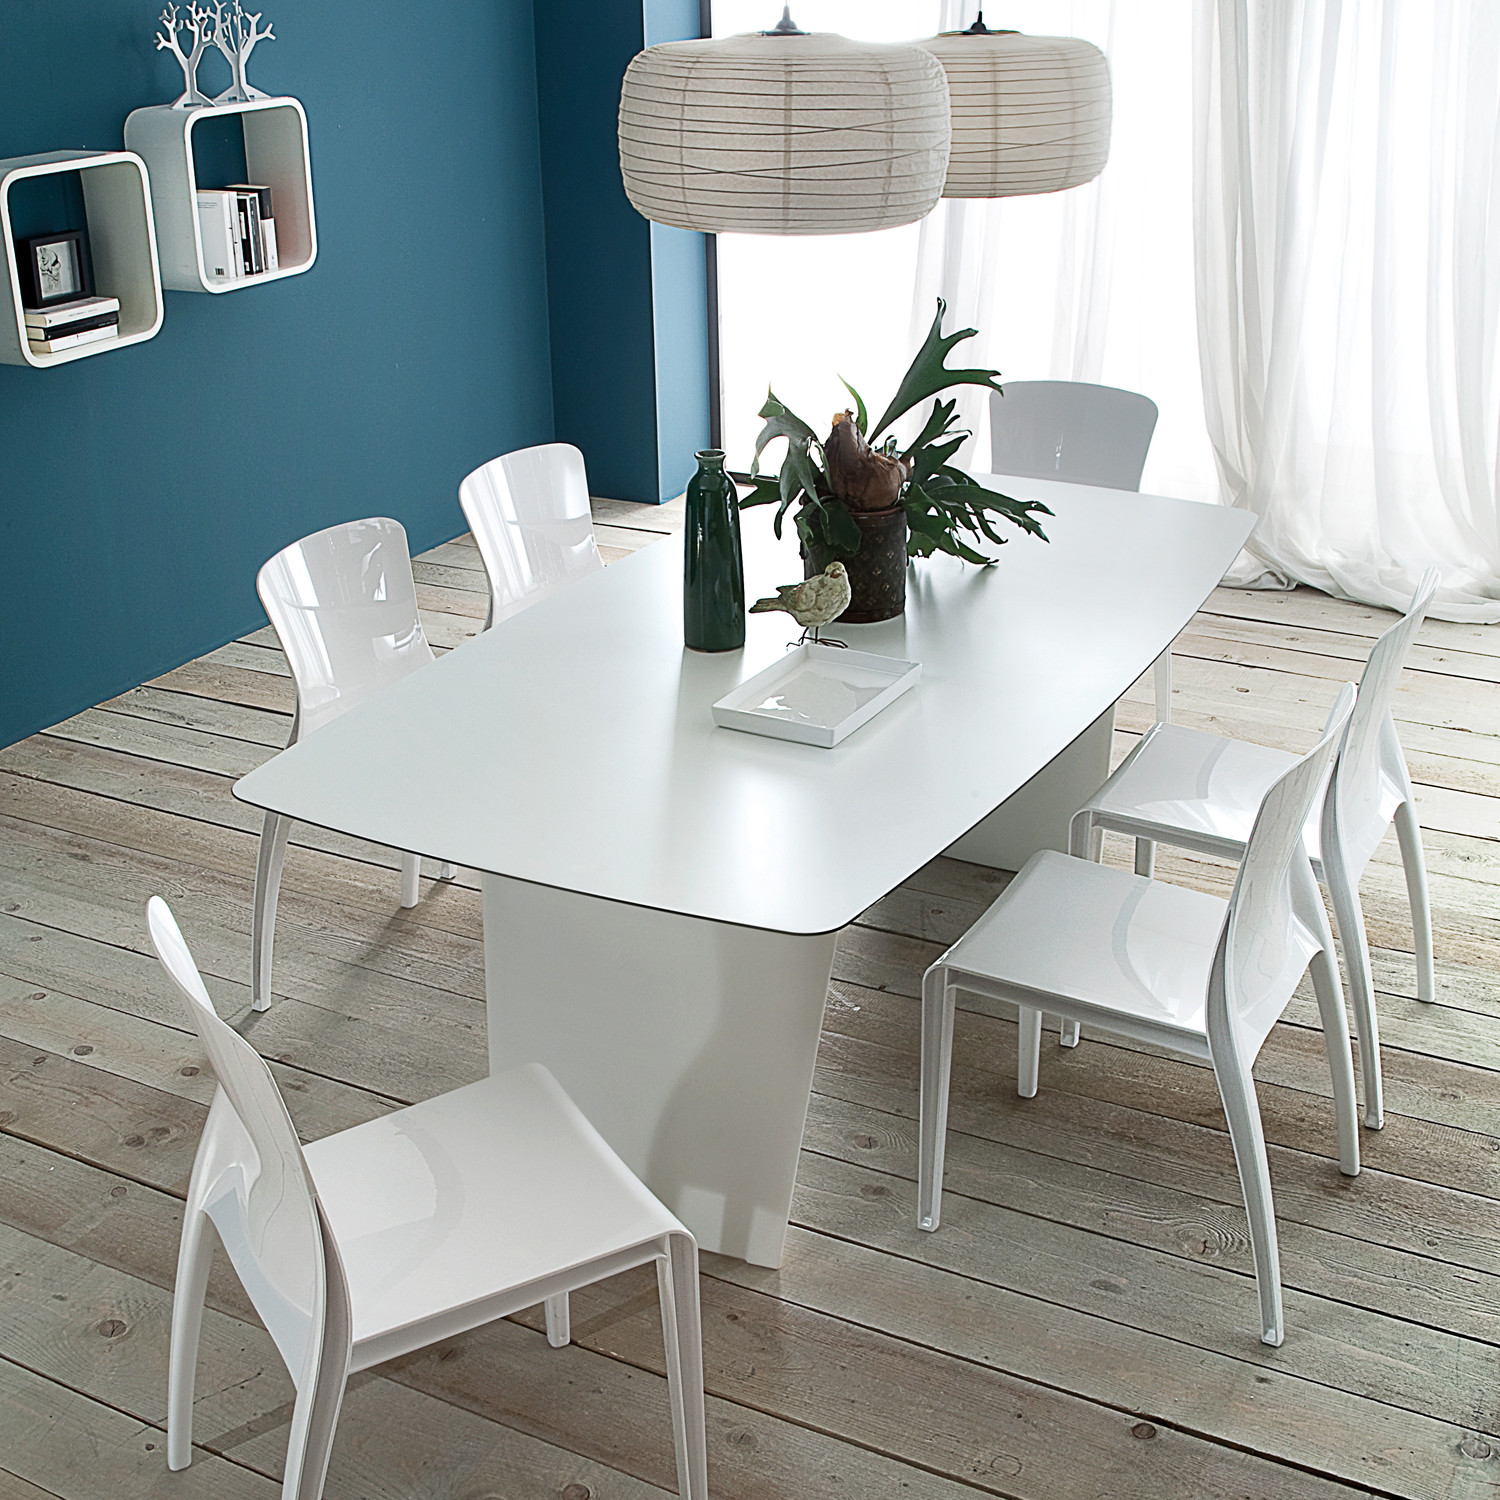 Stone table domitalia dining touch of modern for Domitalia stone t dining table